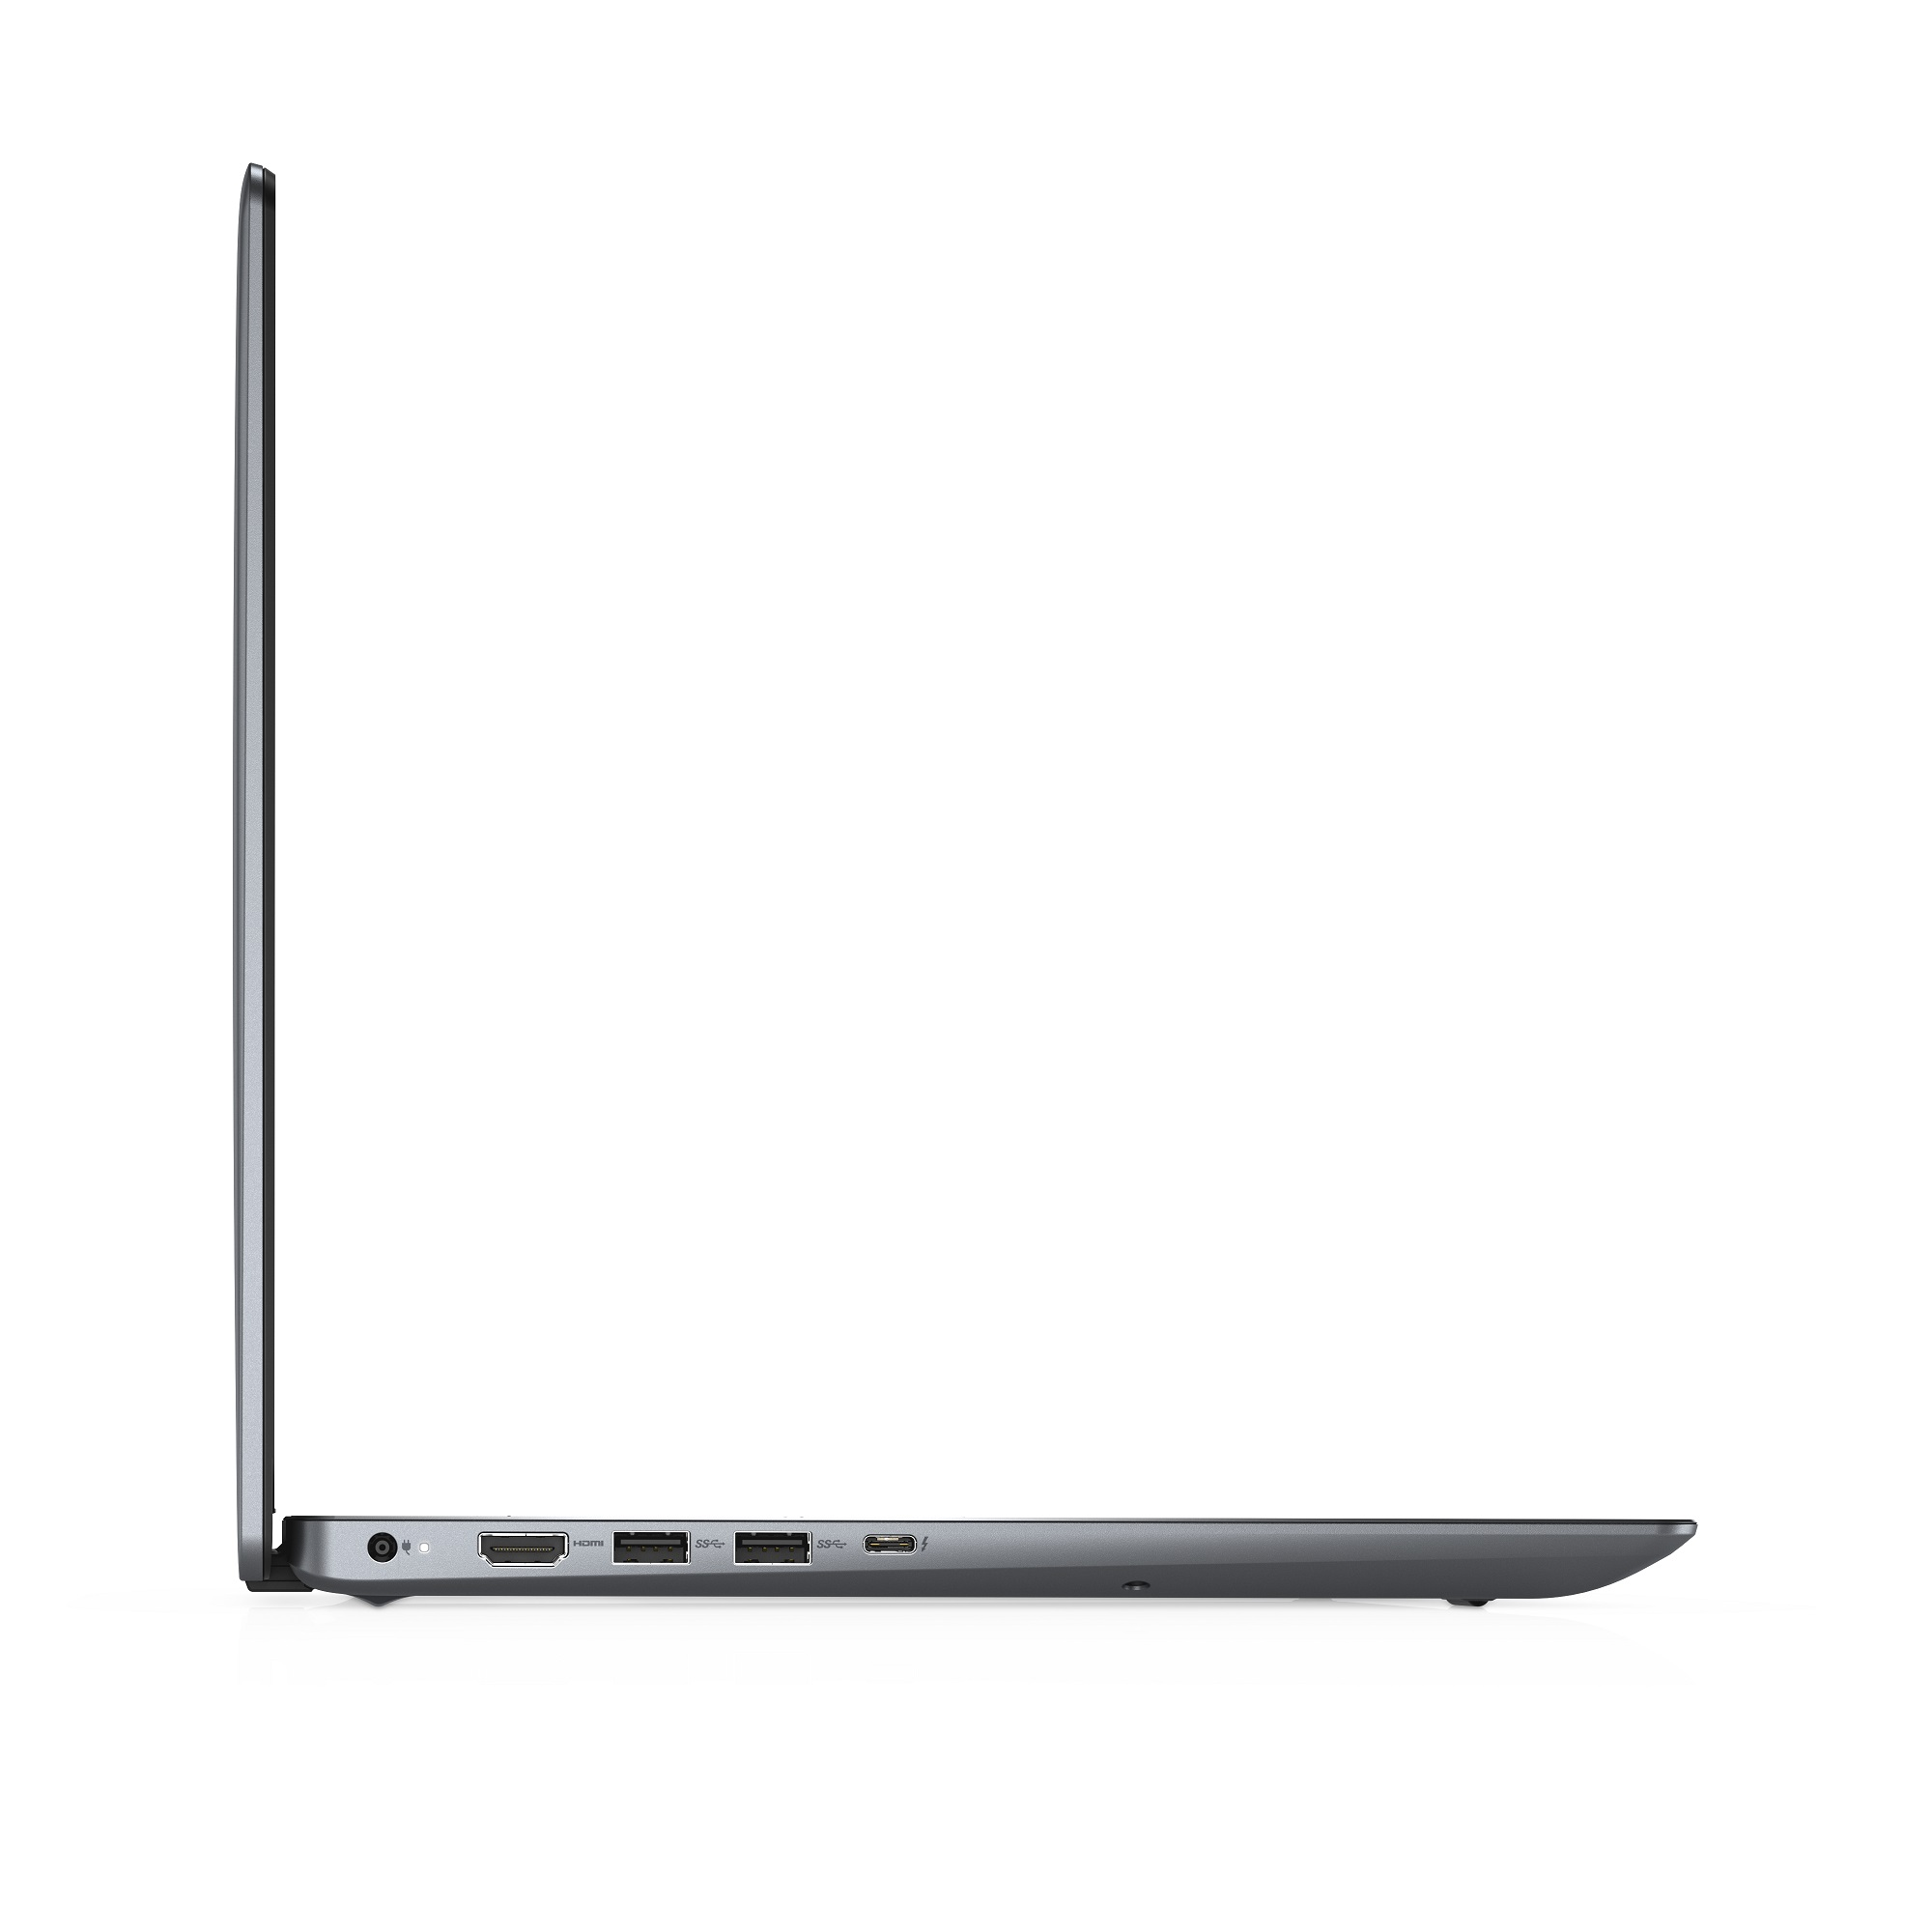 Laptop DELL Vostro 7590 15,6'' FHD i5-9300H 8GB 256GB GTX1050 FPR BT BK Win10P 3YNBD